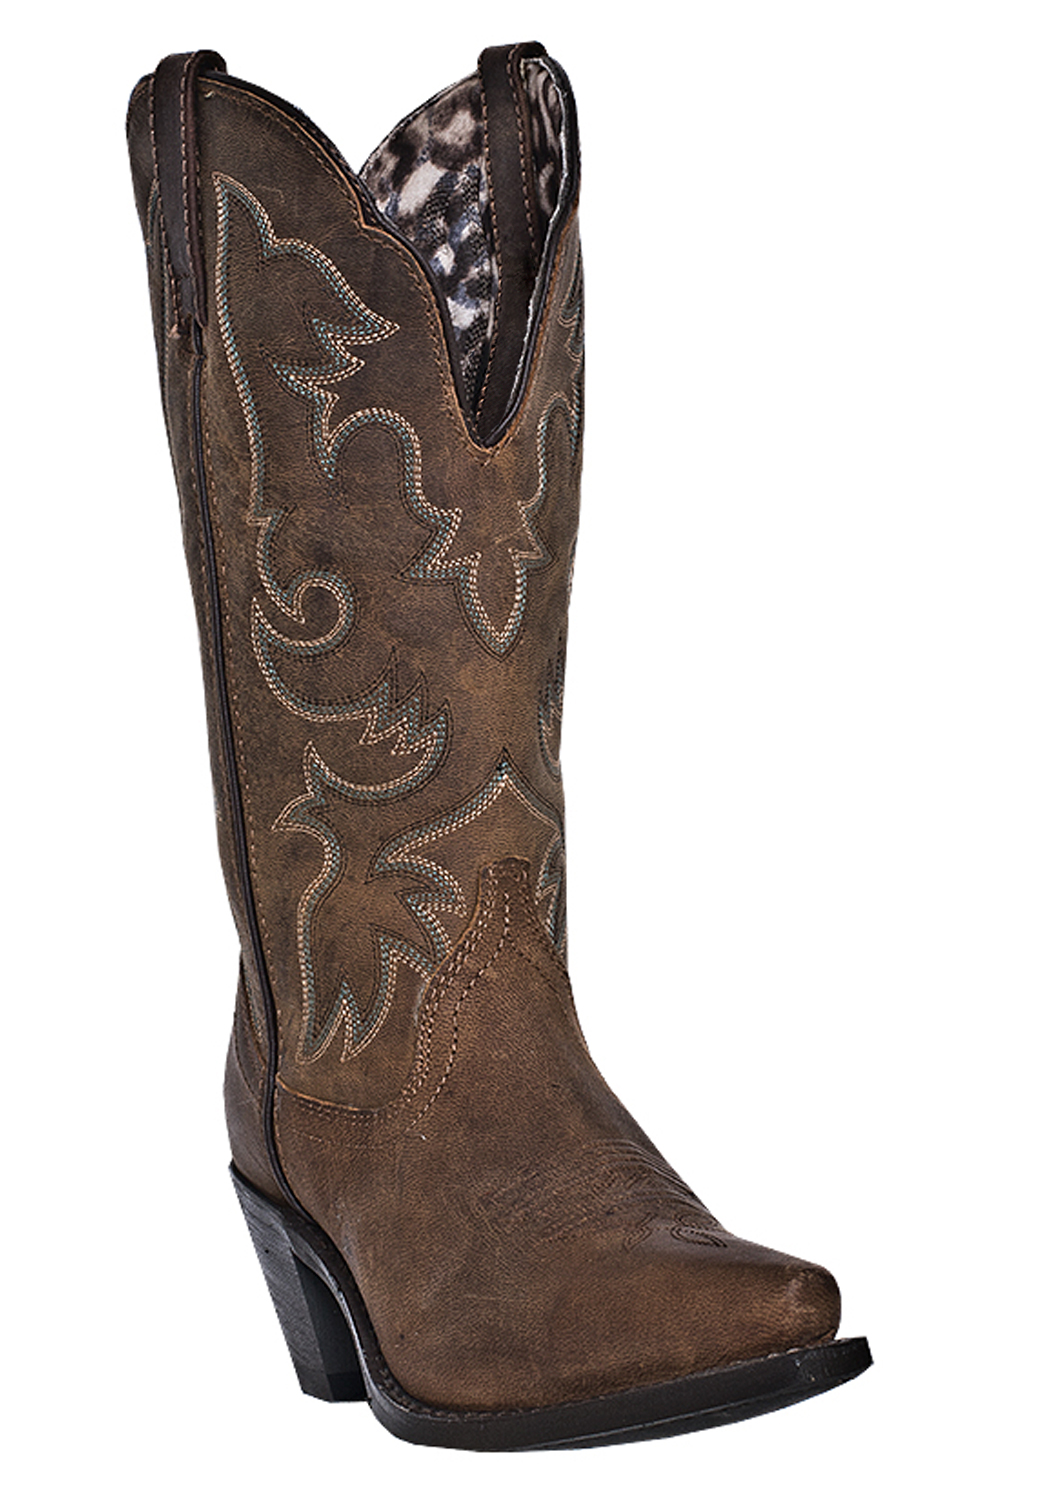 Access Cowboy Boot by Laredo,